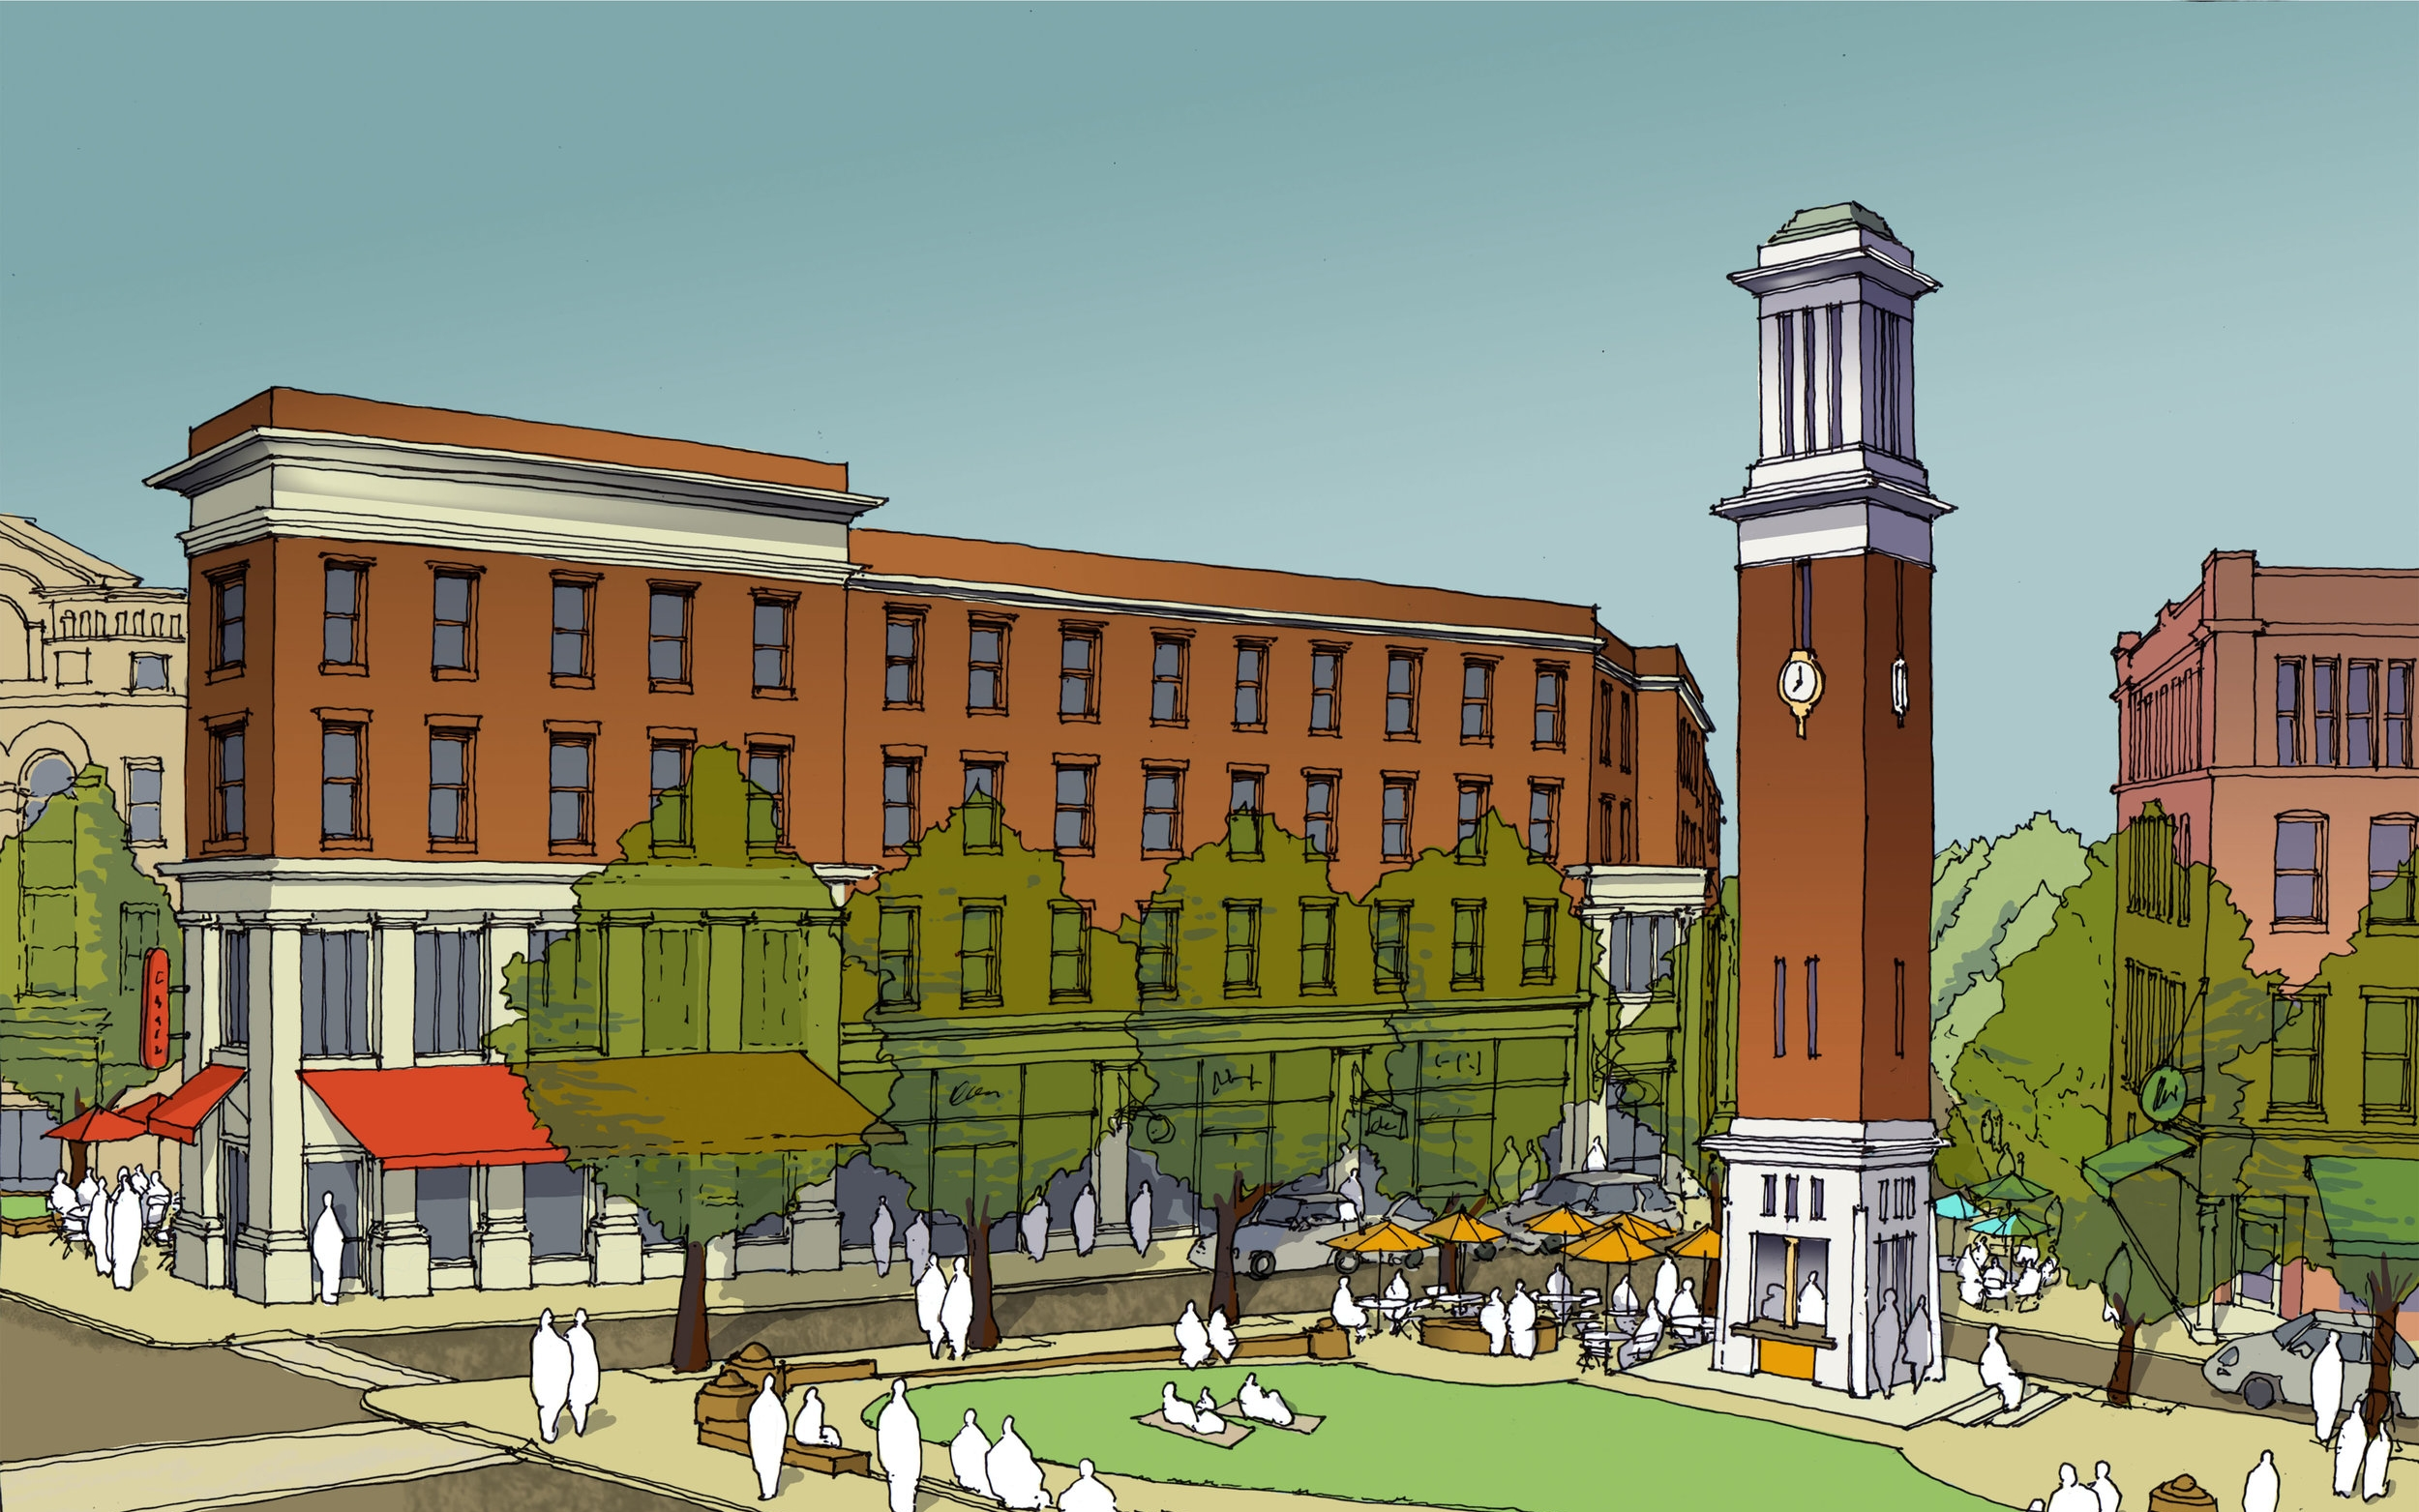 Perspective view looking towards the proposed Gilman Square from the subway station.